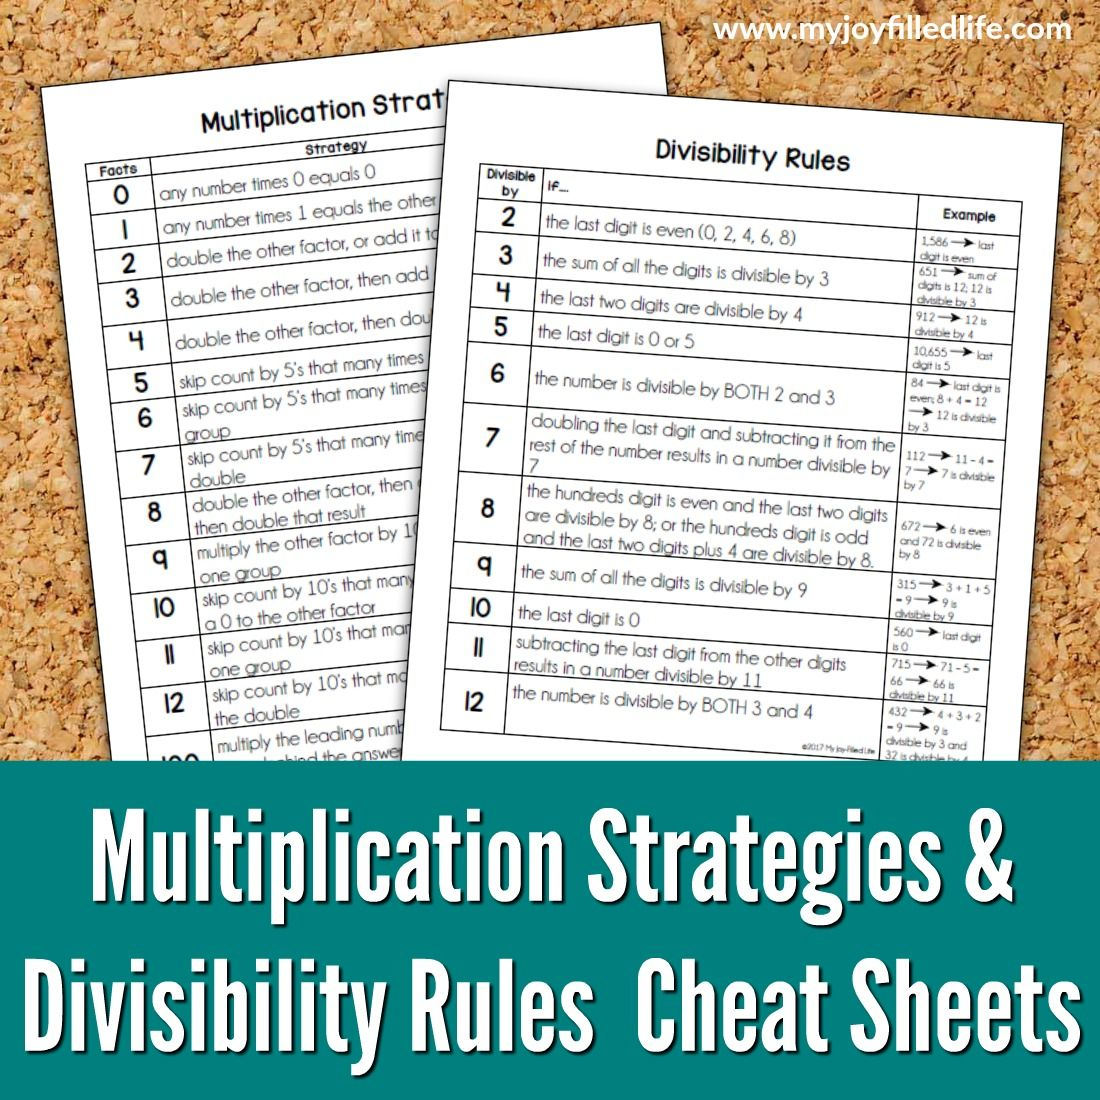 Multiplication Strategies & Divisibility Rules Cheat Sheets   Math ...